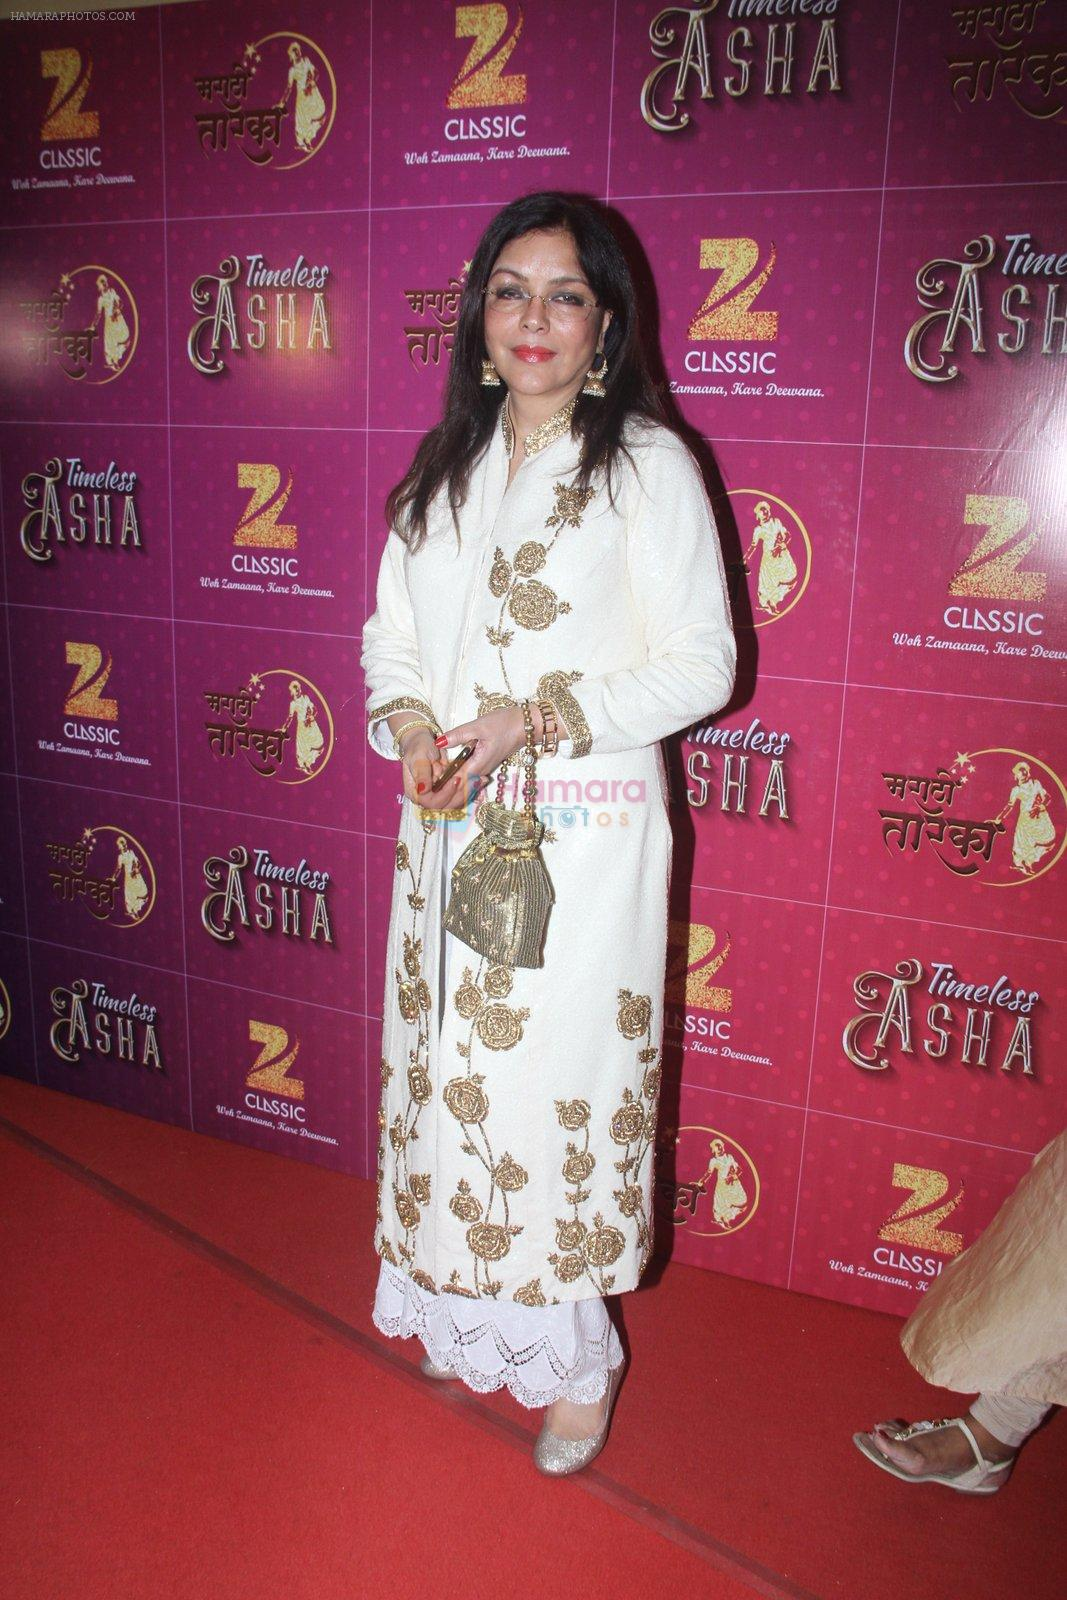 Zeenat Aman during the musical concert Timless Asha organised by Zee Classsic on occasion of Bollywood singer Asha Bhosle 83rd birthday in Mumbai, India on September 8, 2016